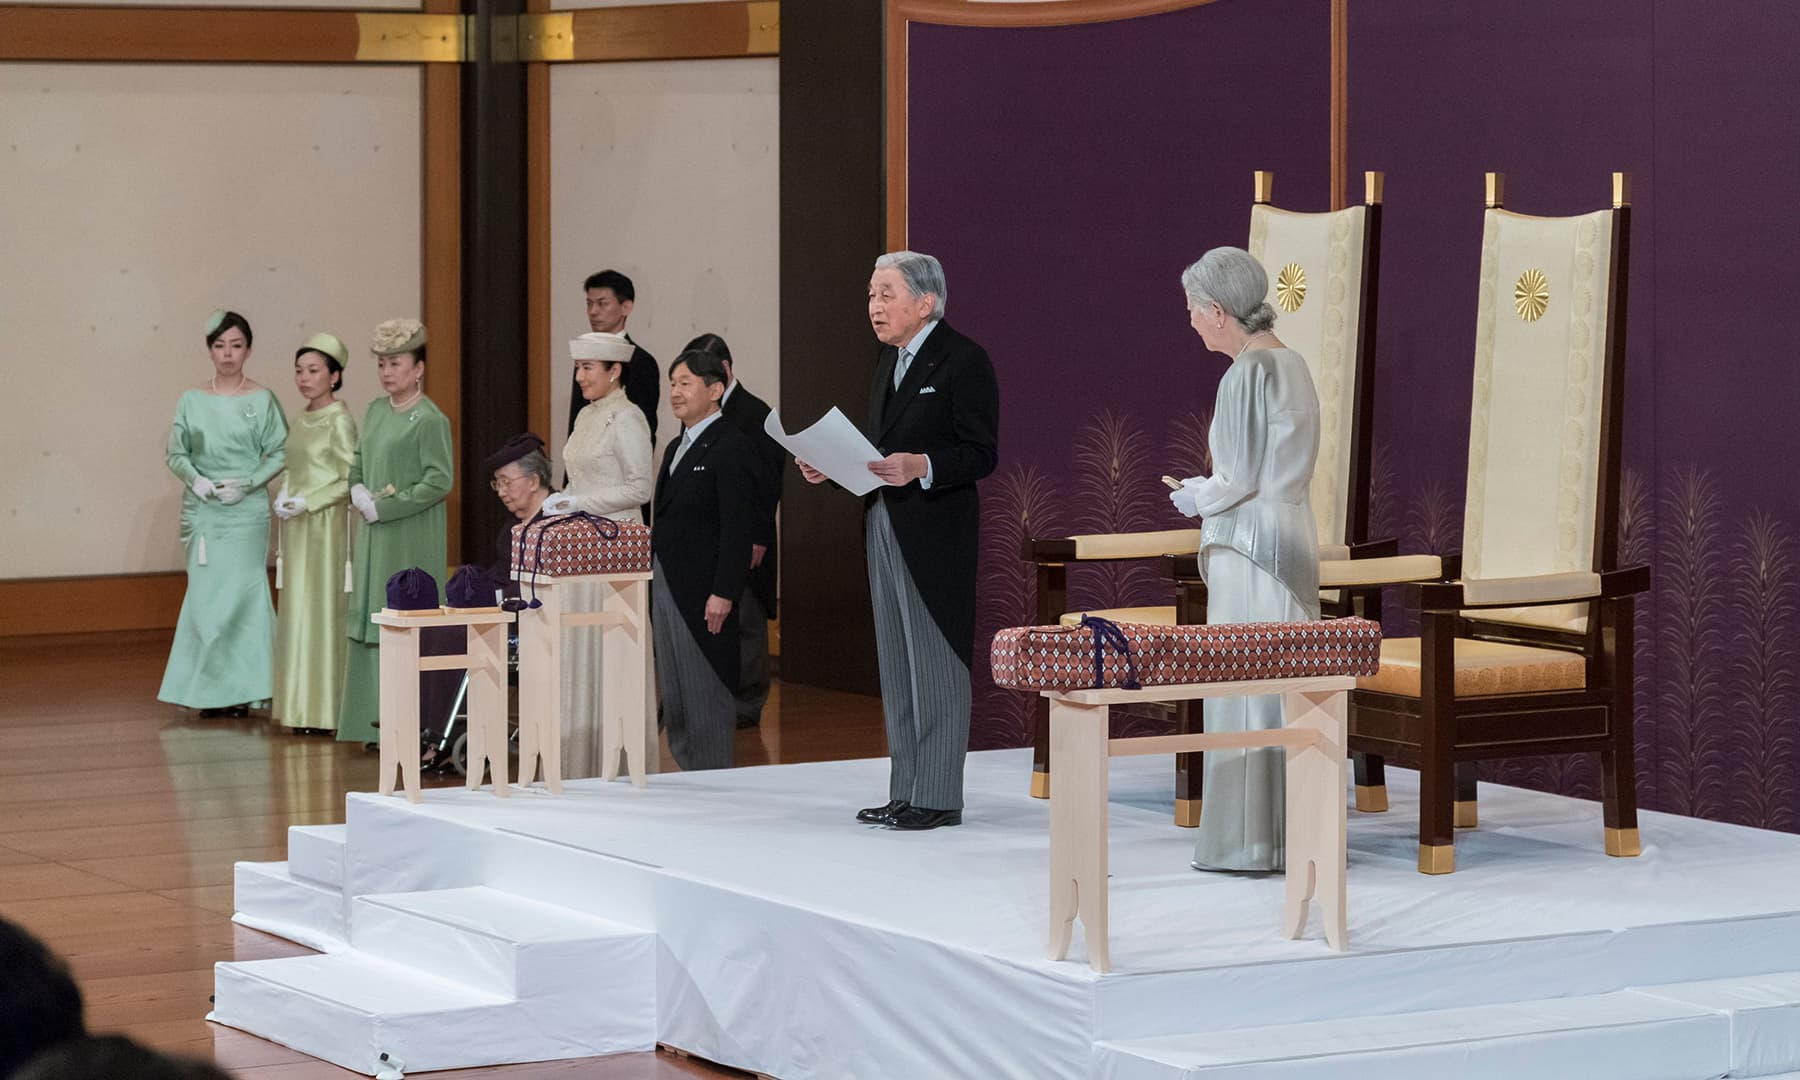 This handout photo taken and released by Japan's Imperial Household Agency on April 30, 2019 shows Japan's Emperor Akihito (C) speaking during his abdication ceremony in front of other members of the royal family and top government officials at the Imperial Palace in Tokyo, as Empress Michiko (R) looks on. — AFP